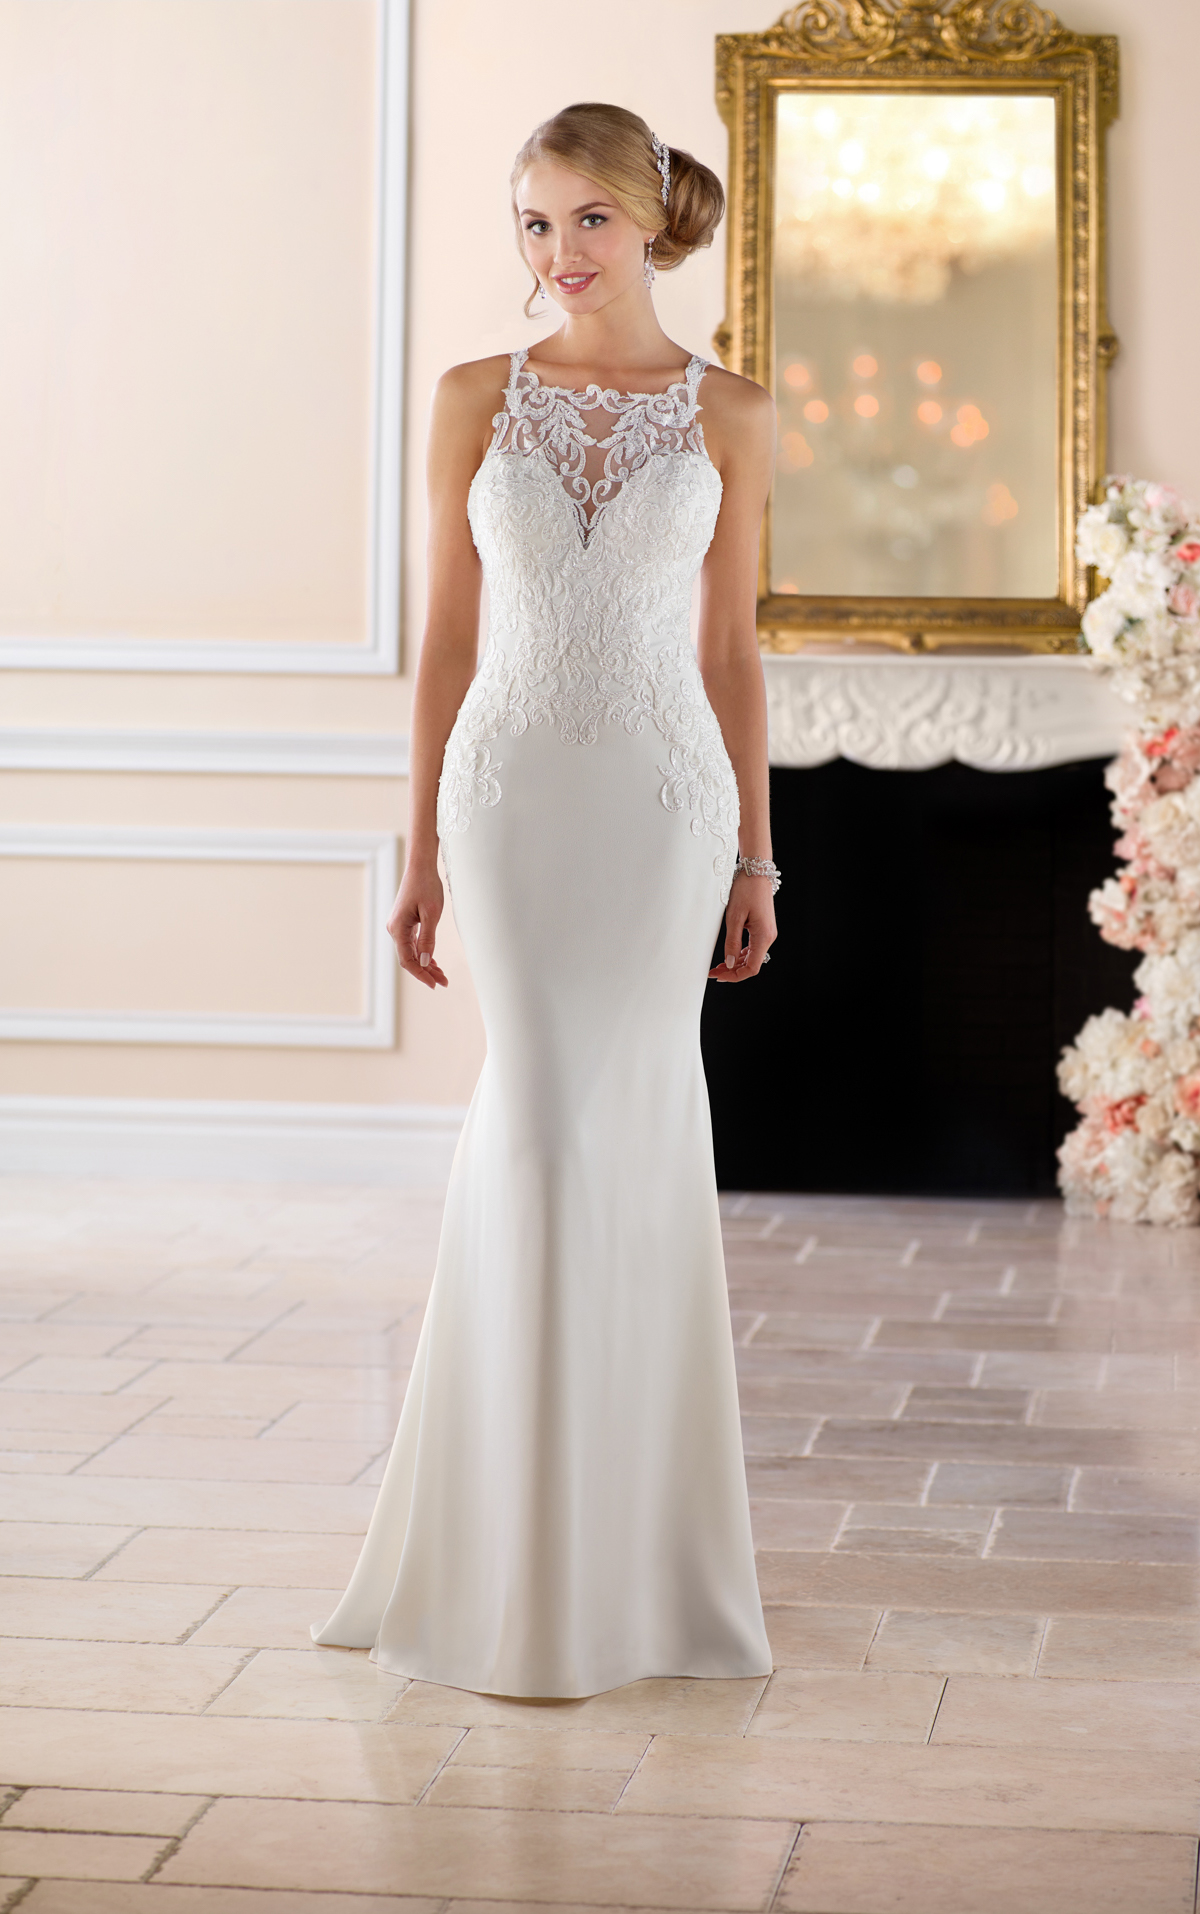 Stella york 6404 high neck sheath wedding dress lace for Wedding dress shops york